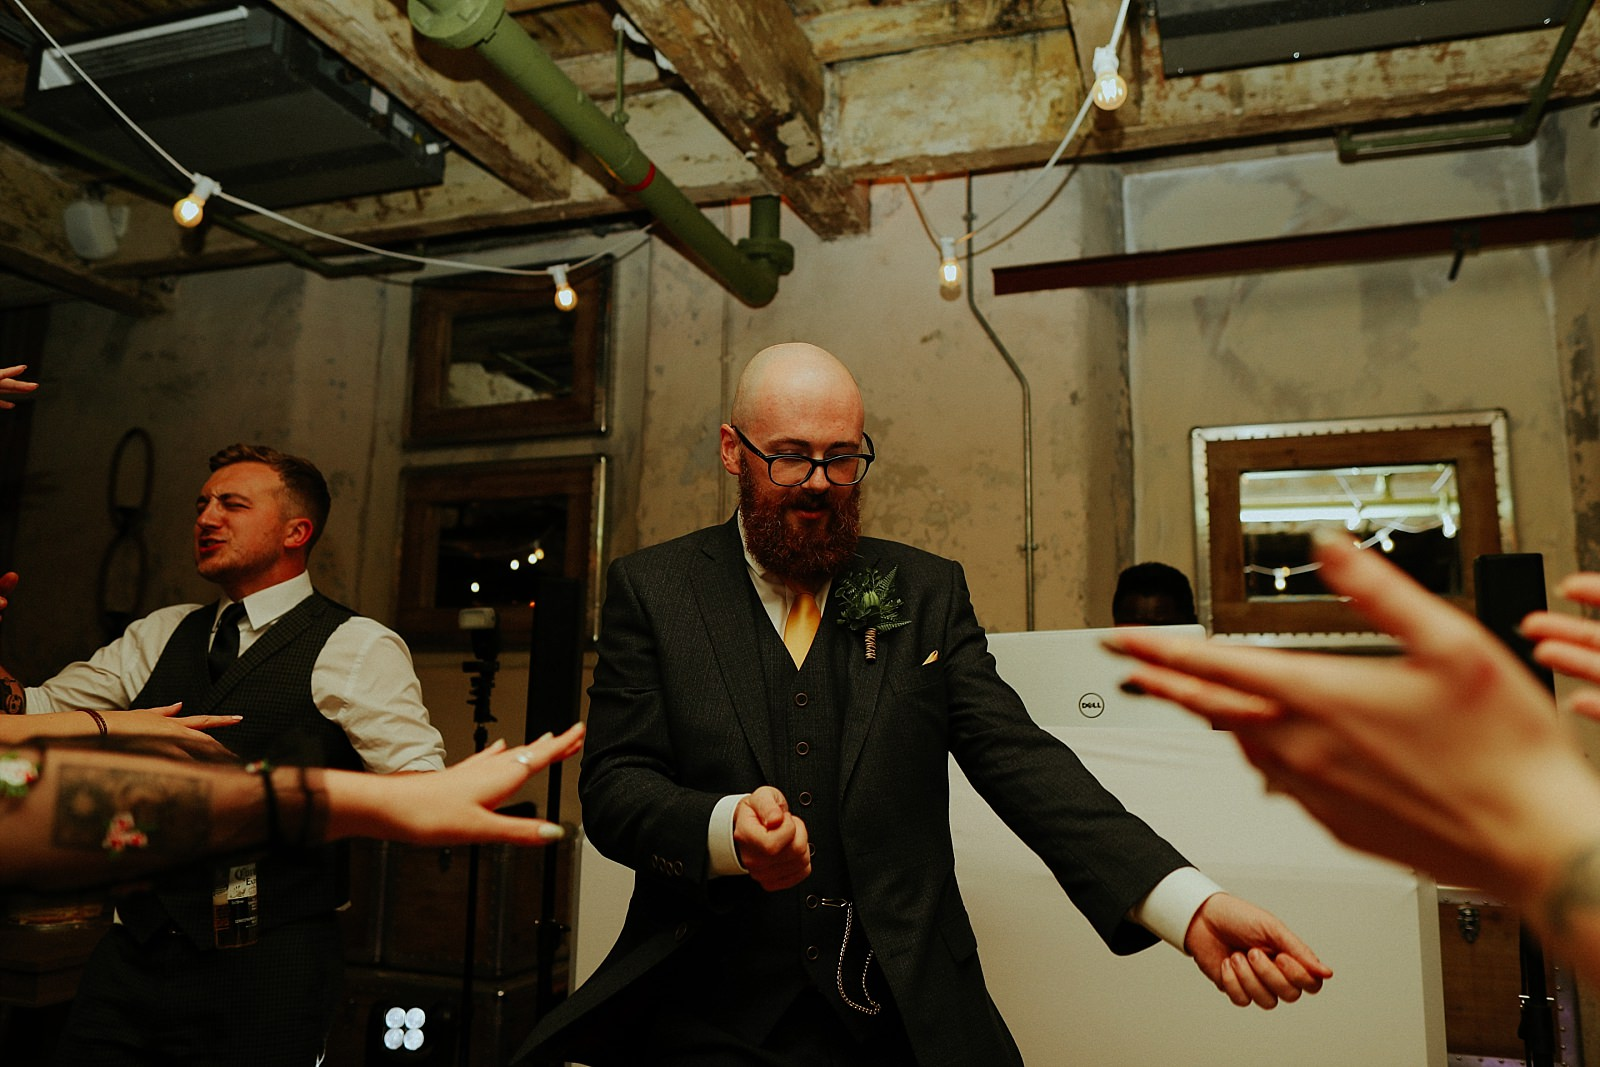 funny dance by the groom